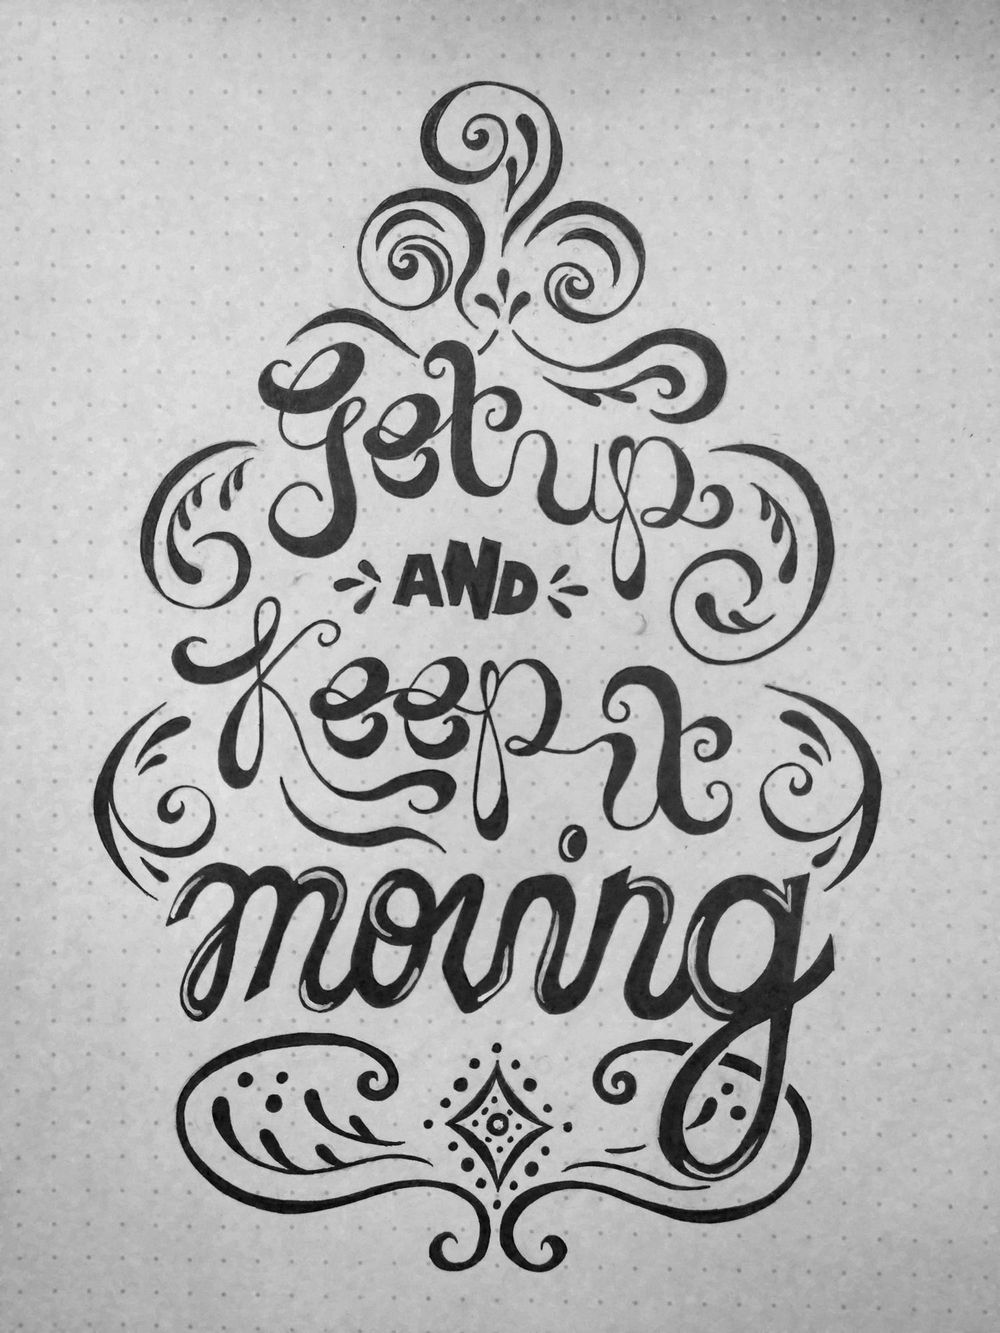 Get Up & Keep It Moving - image 1 - student project